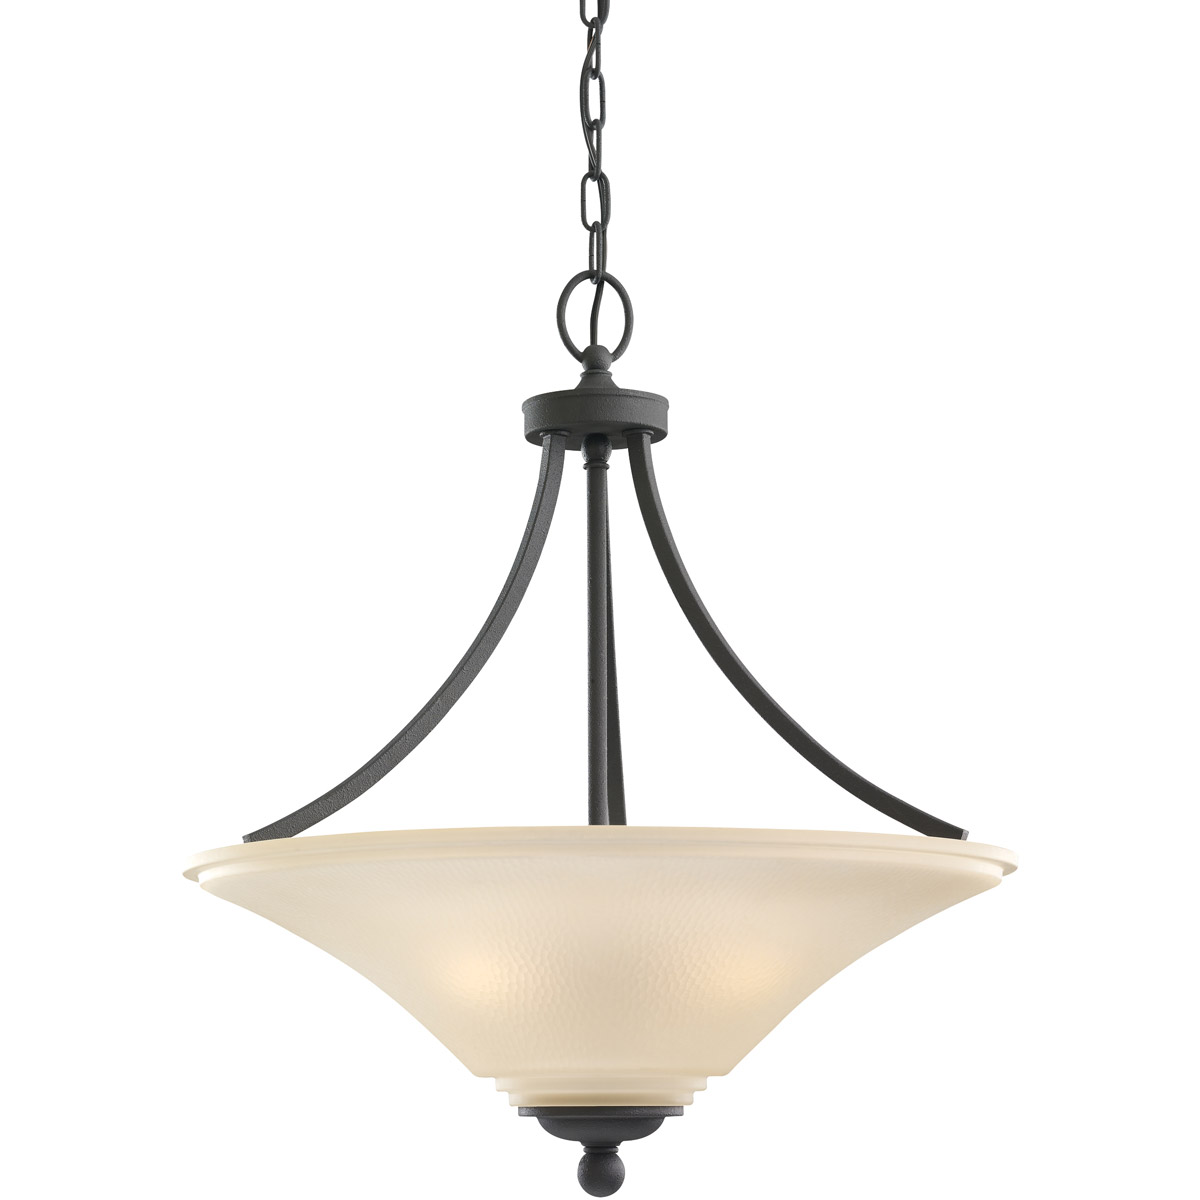 Sea Gull Lighting Somerton 3 Light Pendant in Blacksmith 65376-839